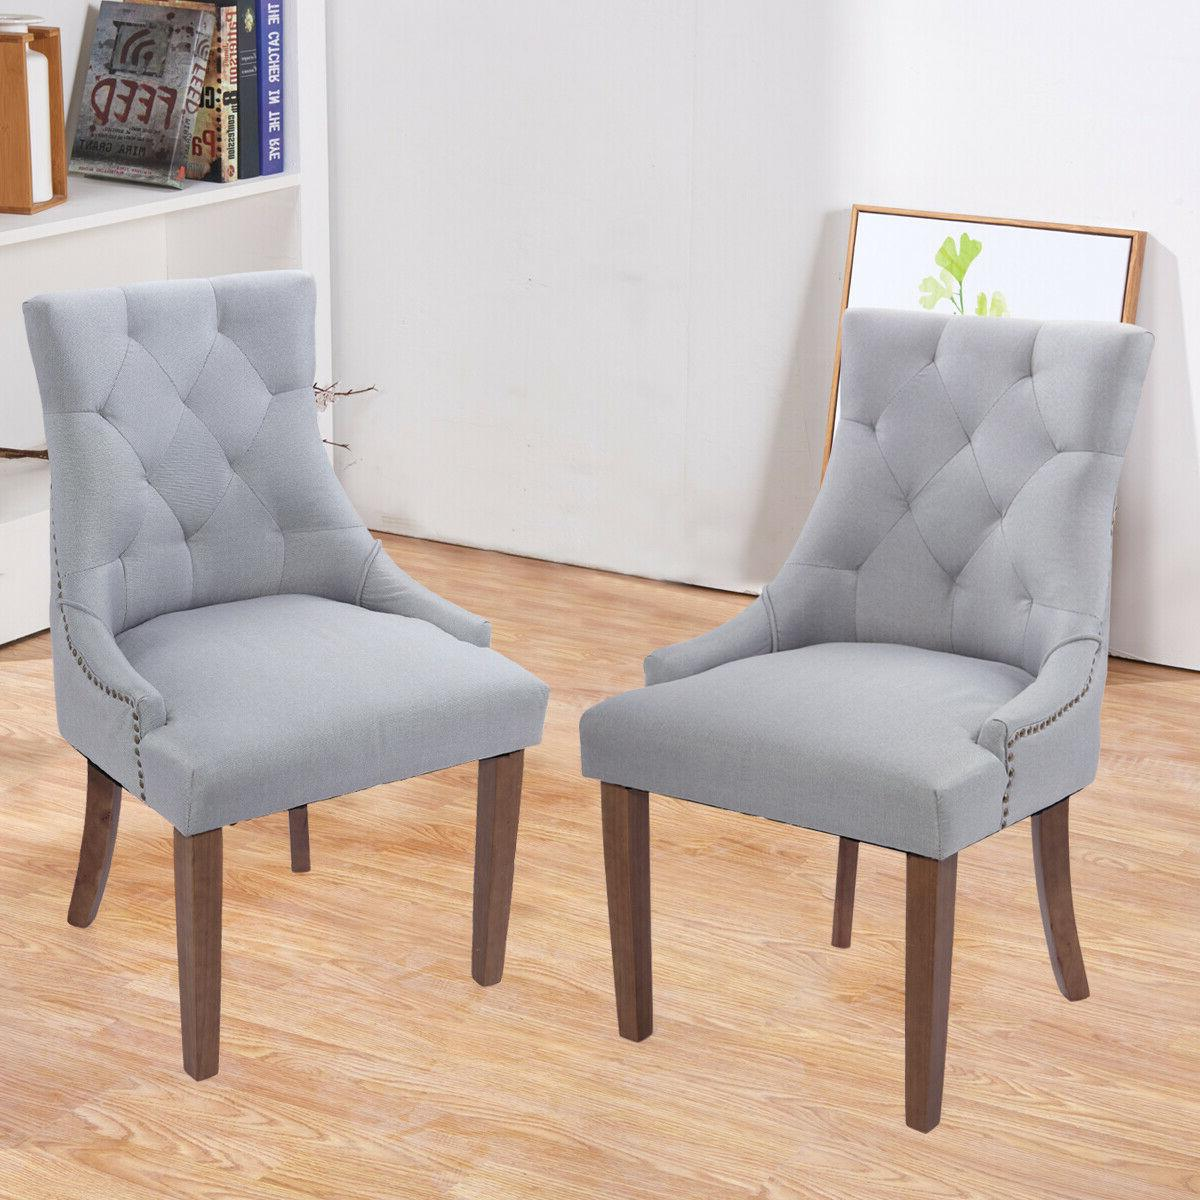 set of 2 tufted dining chairs accent